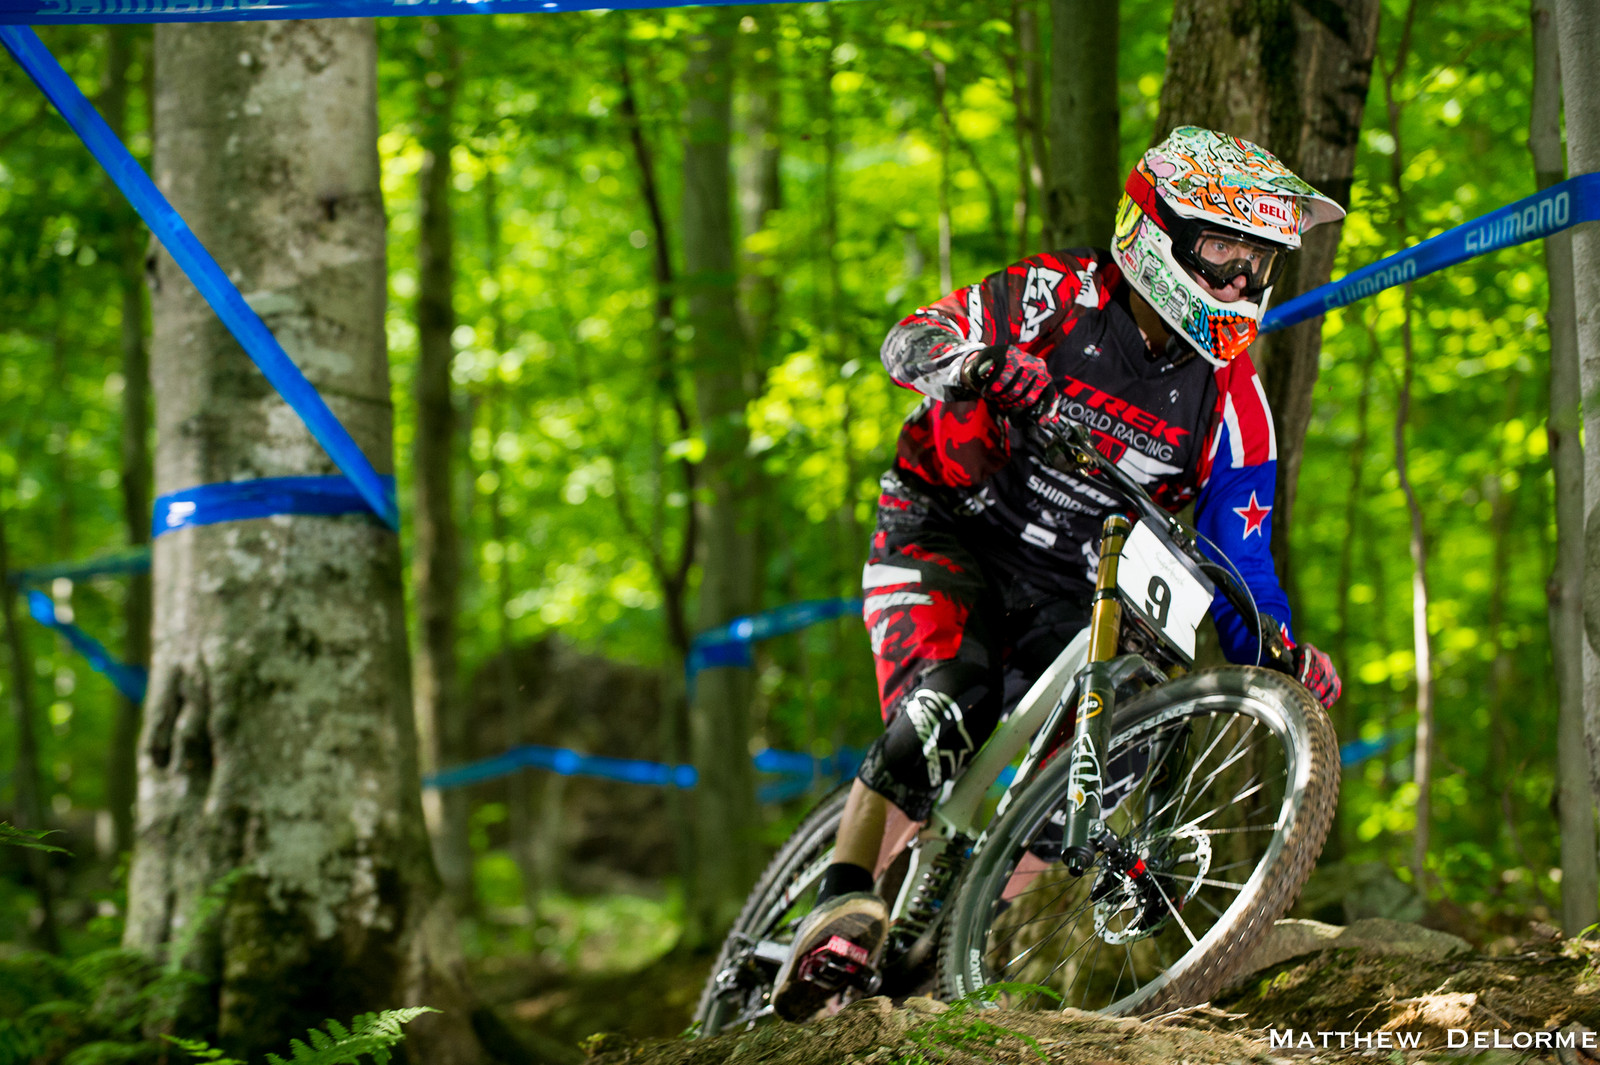 Justin Leov Wins MTB Grand Prix, Sugarbush, Vermont - Grand Prix Sugarbush Vermont - Mountain Biking Pictures - Vital MTB